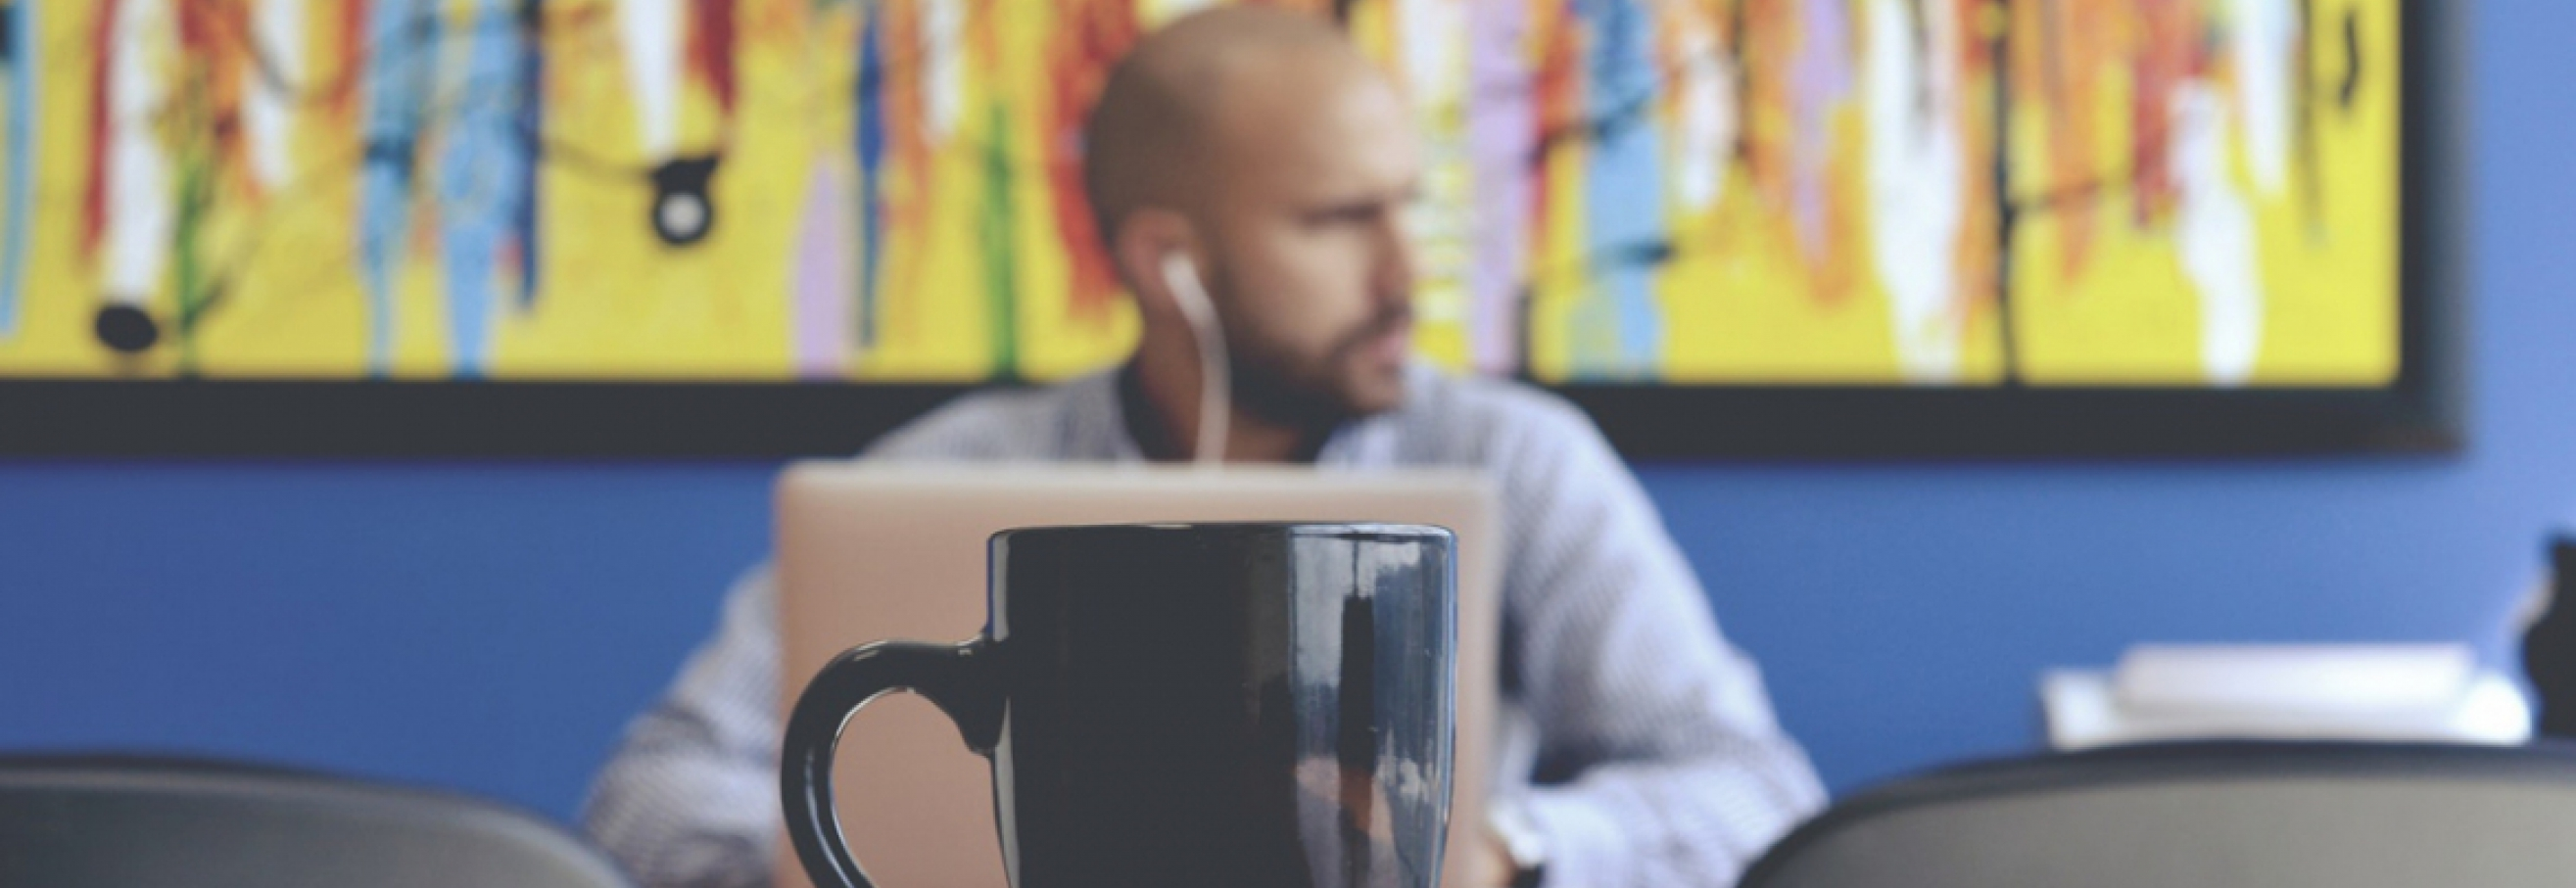 Man plugged into laptop sitting across from coffee mug